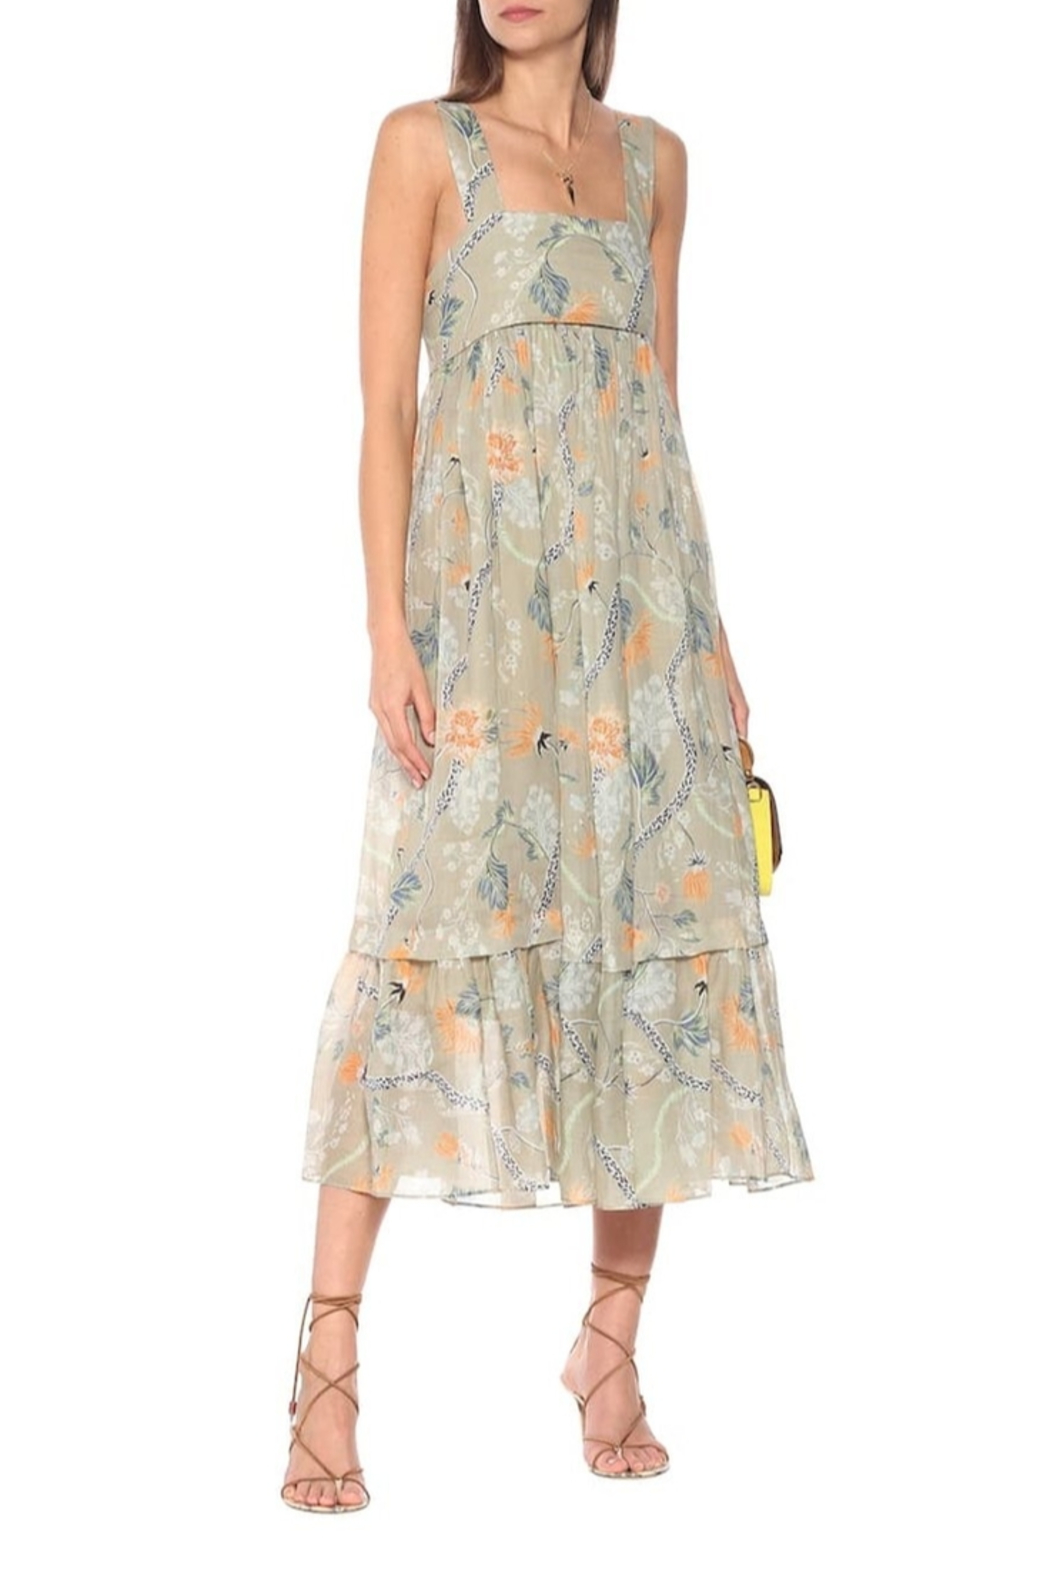 Chloe Thin Strap Low Back Floral Maxi Dress - Front Cropped Image